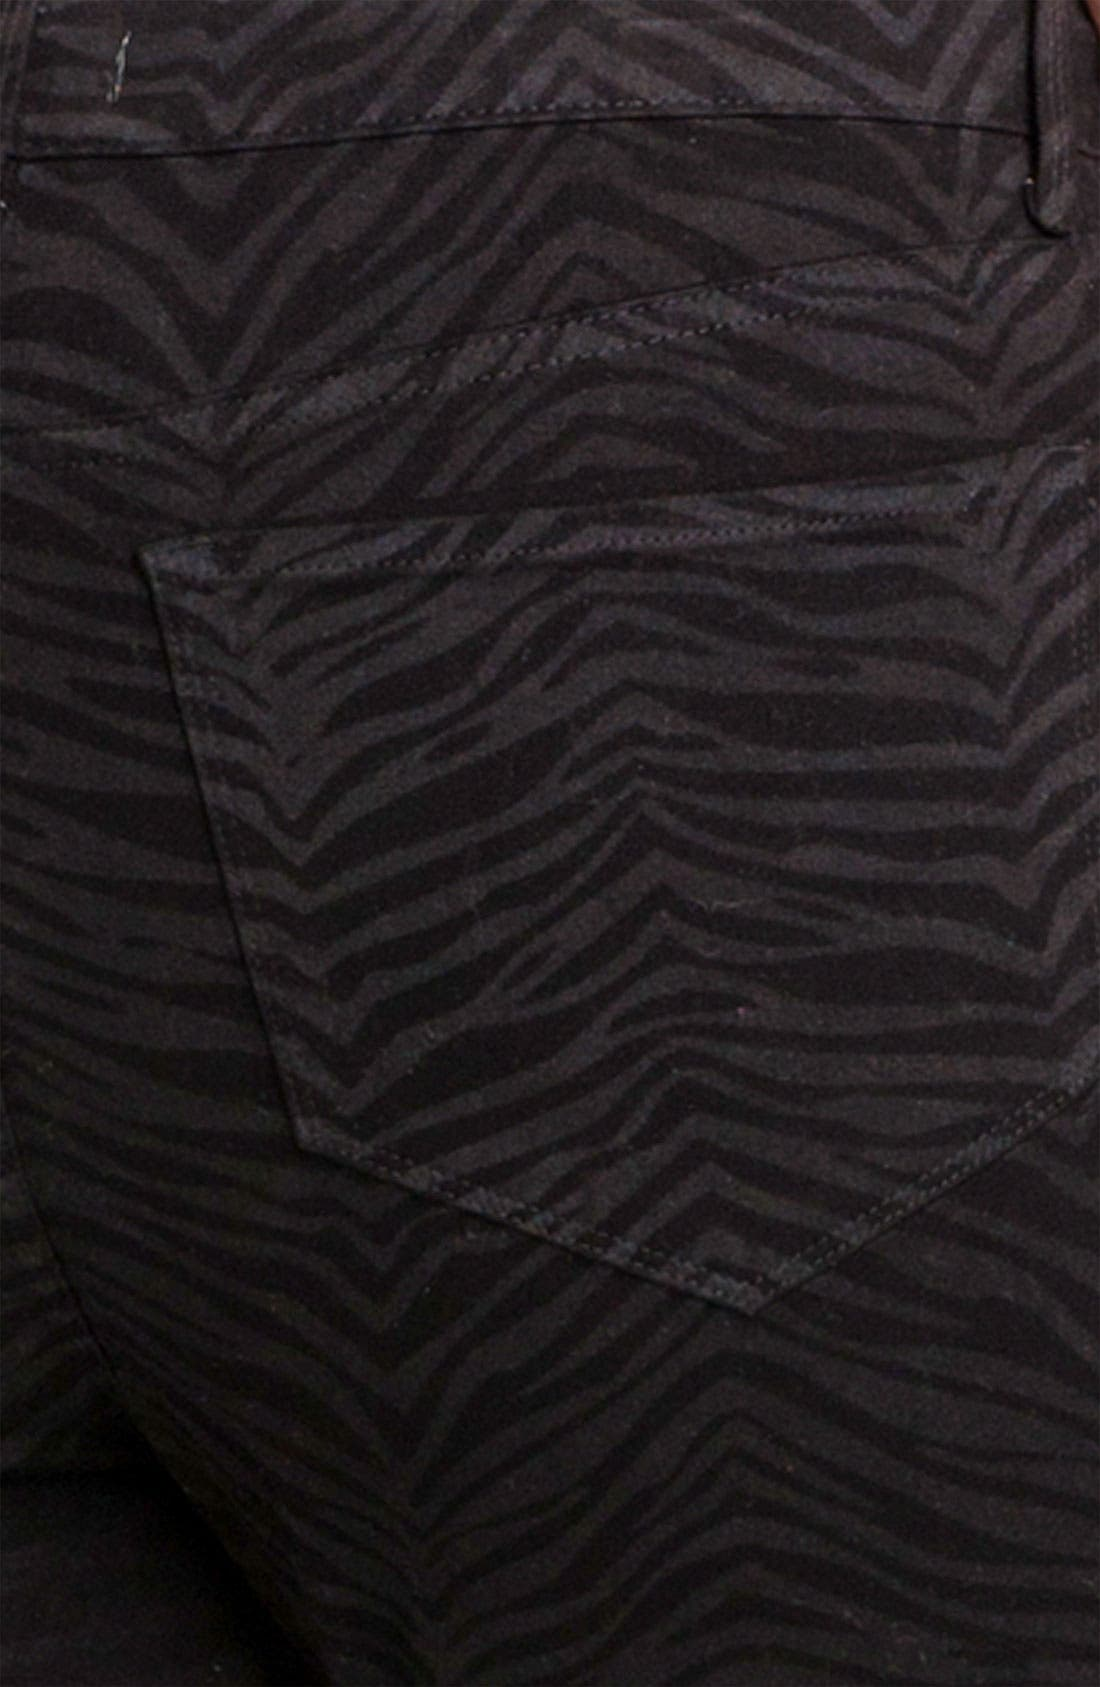 Alternate Image 3  - NYDJ 'Sheri - Zebra' Print Twill Slim Jeans (Plus)